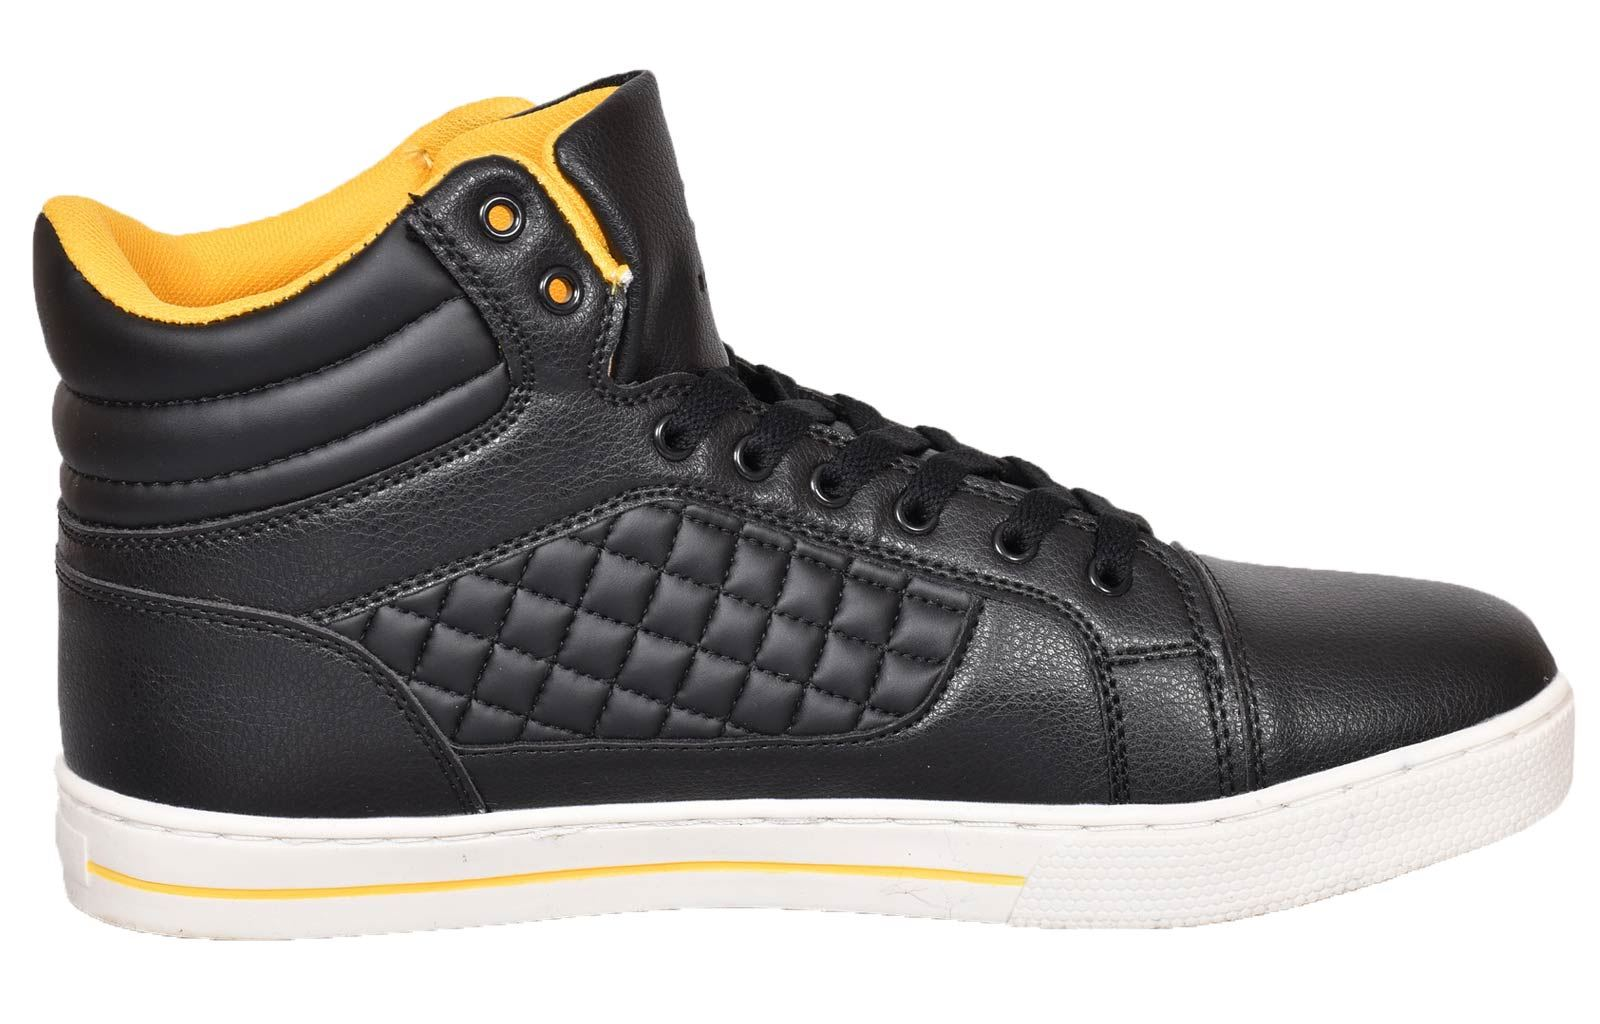 Mens-Trainers-Lace-up-Crosshatch-High-Tops-Ankle-Padded-Shoes-New-UK-Sizes-7-12 thumbnail 5